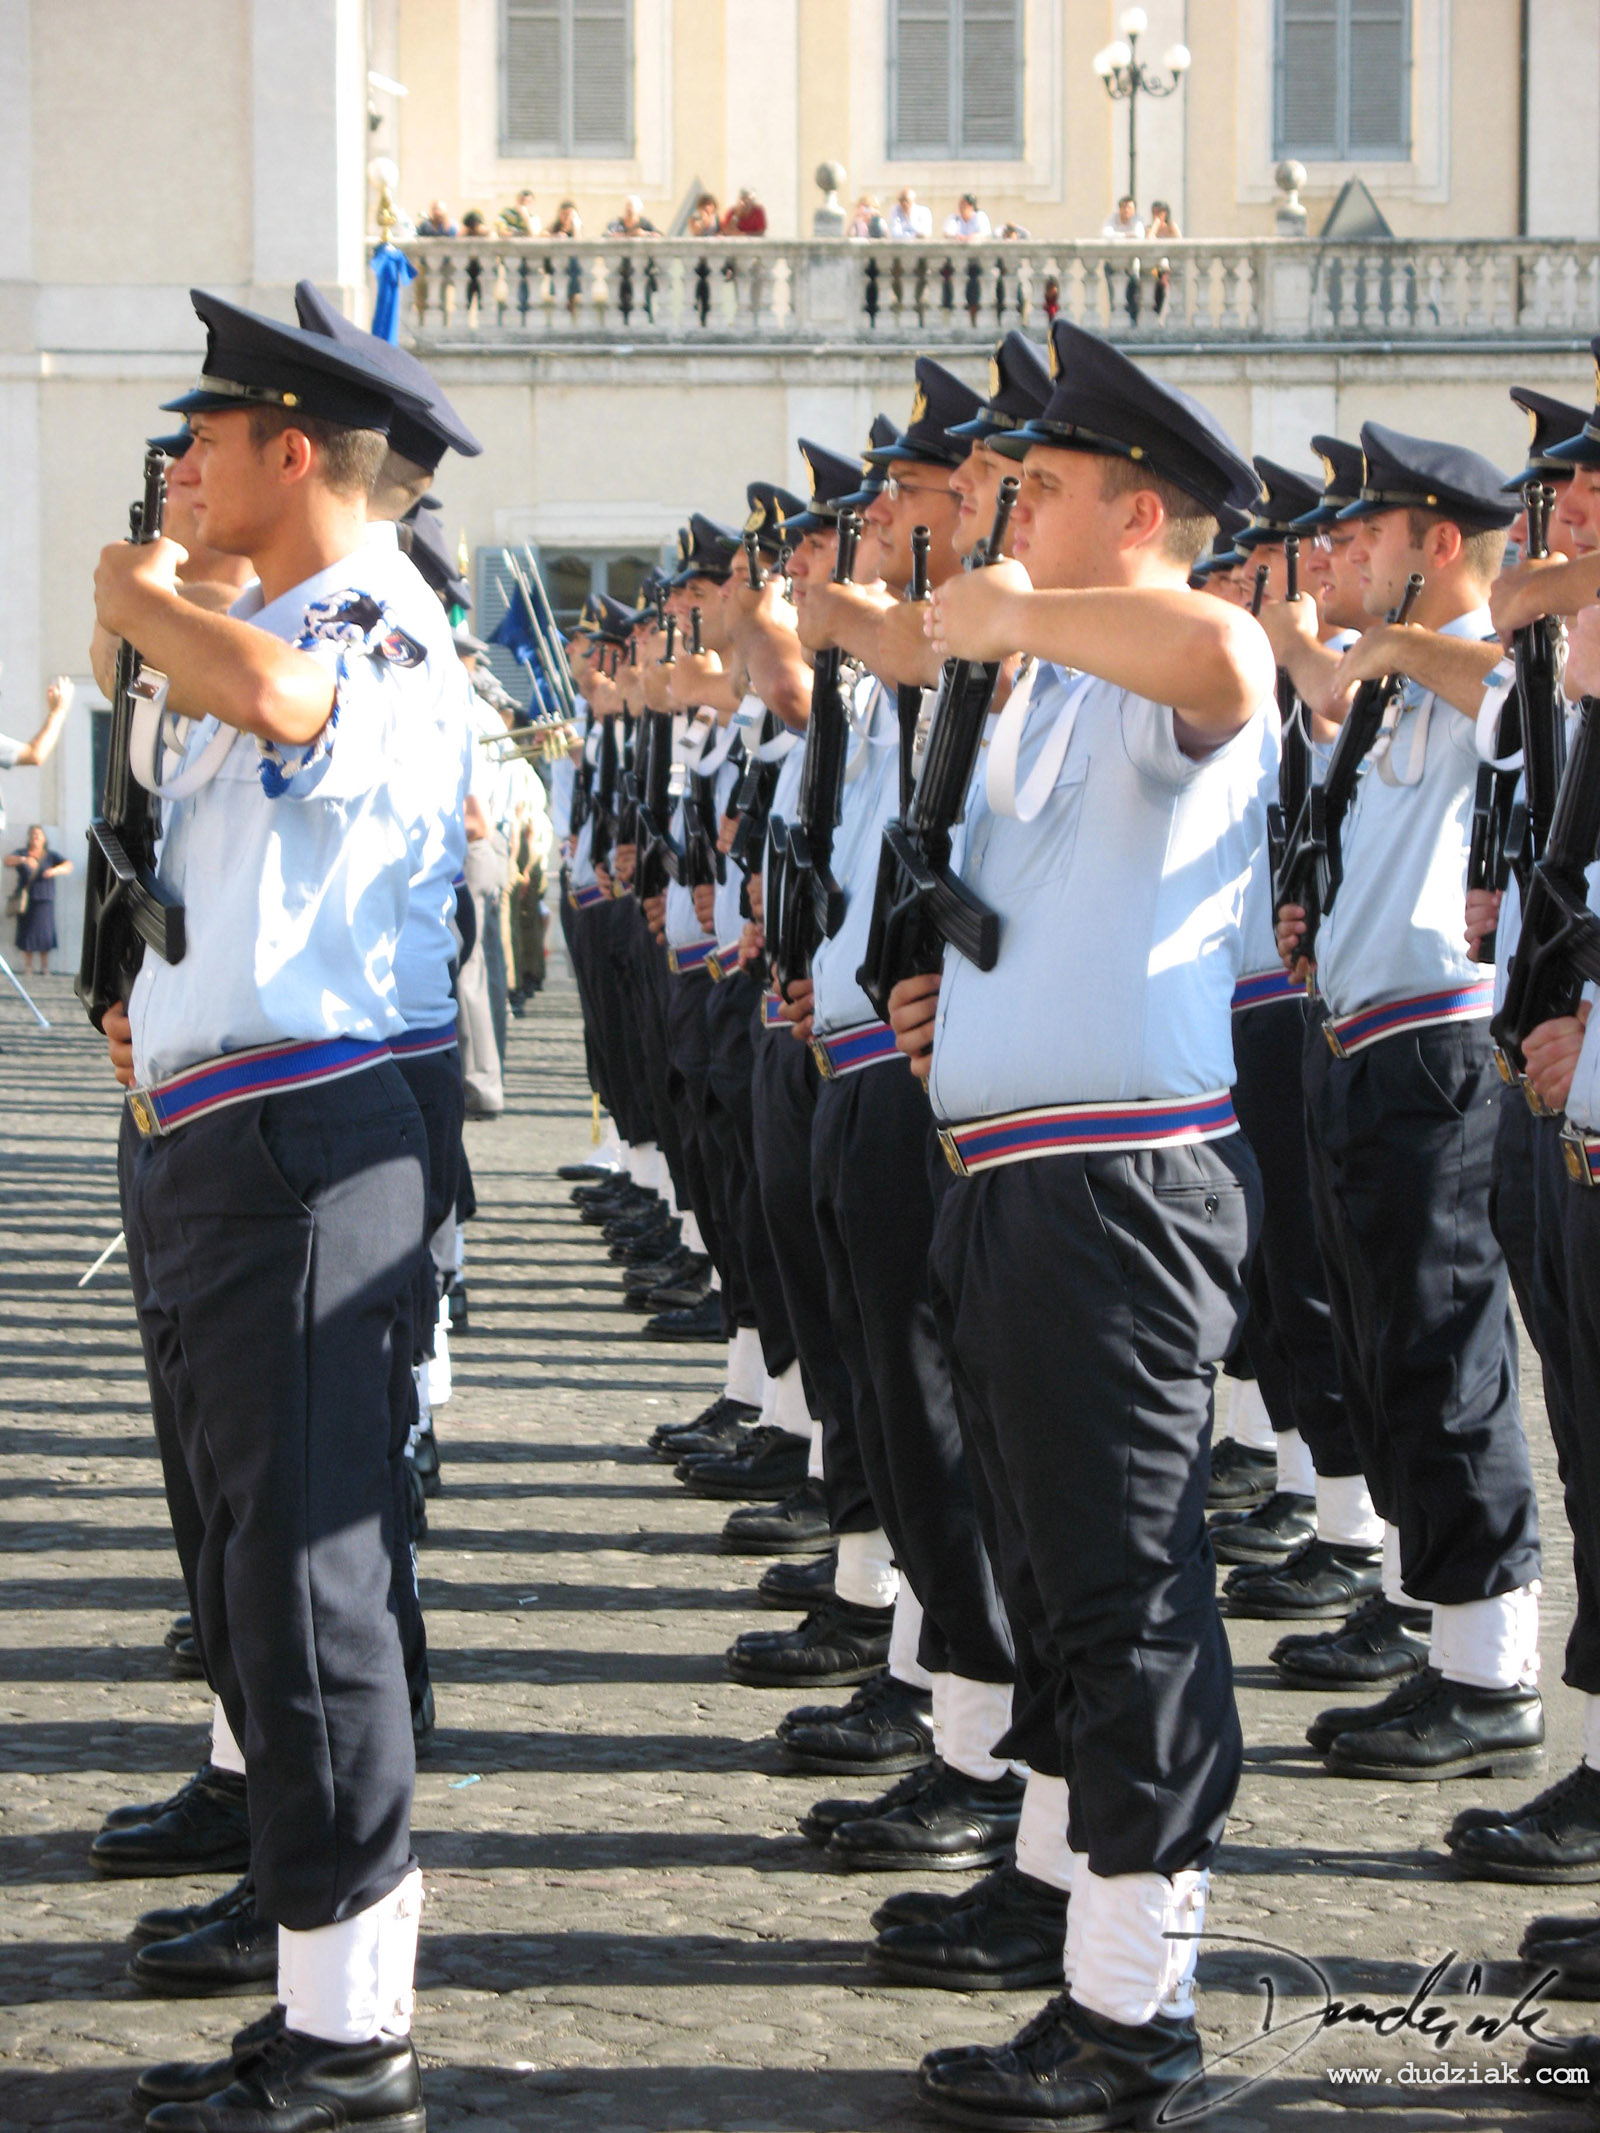 Picture of the changing of the guard outside the president's estate in Rome, Italy